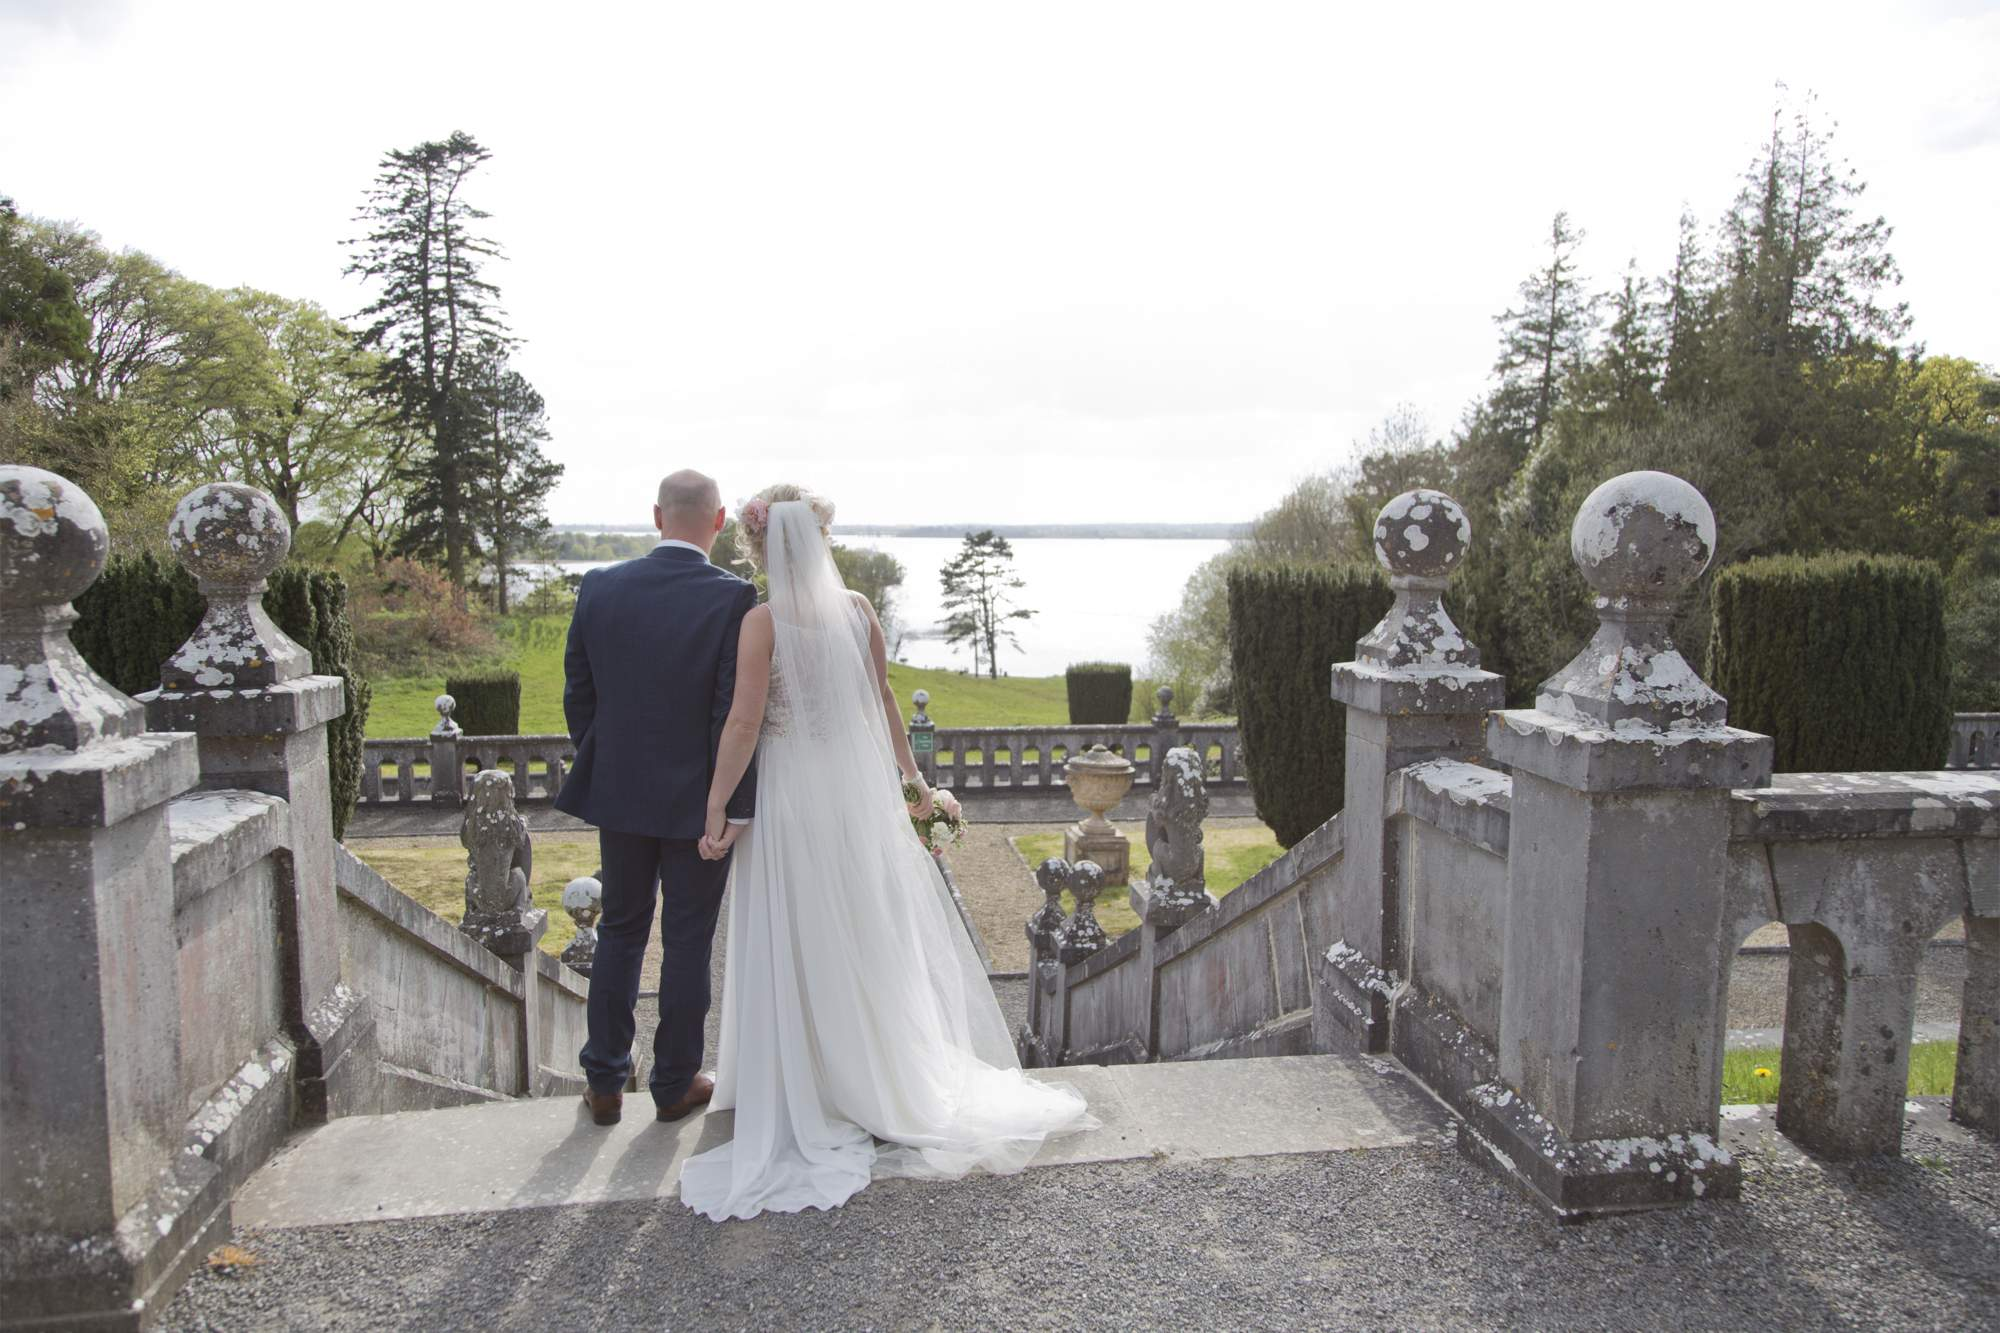 Wedding Photographer Kilkenny, Call 0861946237,  Wedding Photography River Court Hotel, Langtons Hotel by Aoileann Nic Dhonnacha, Ireland